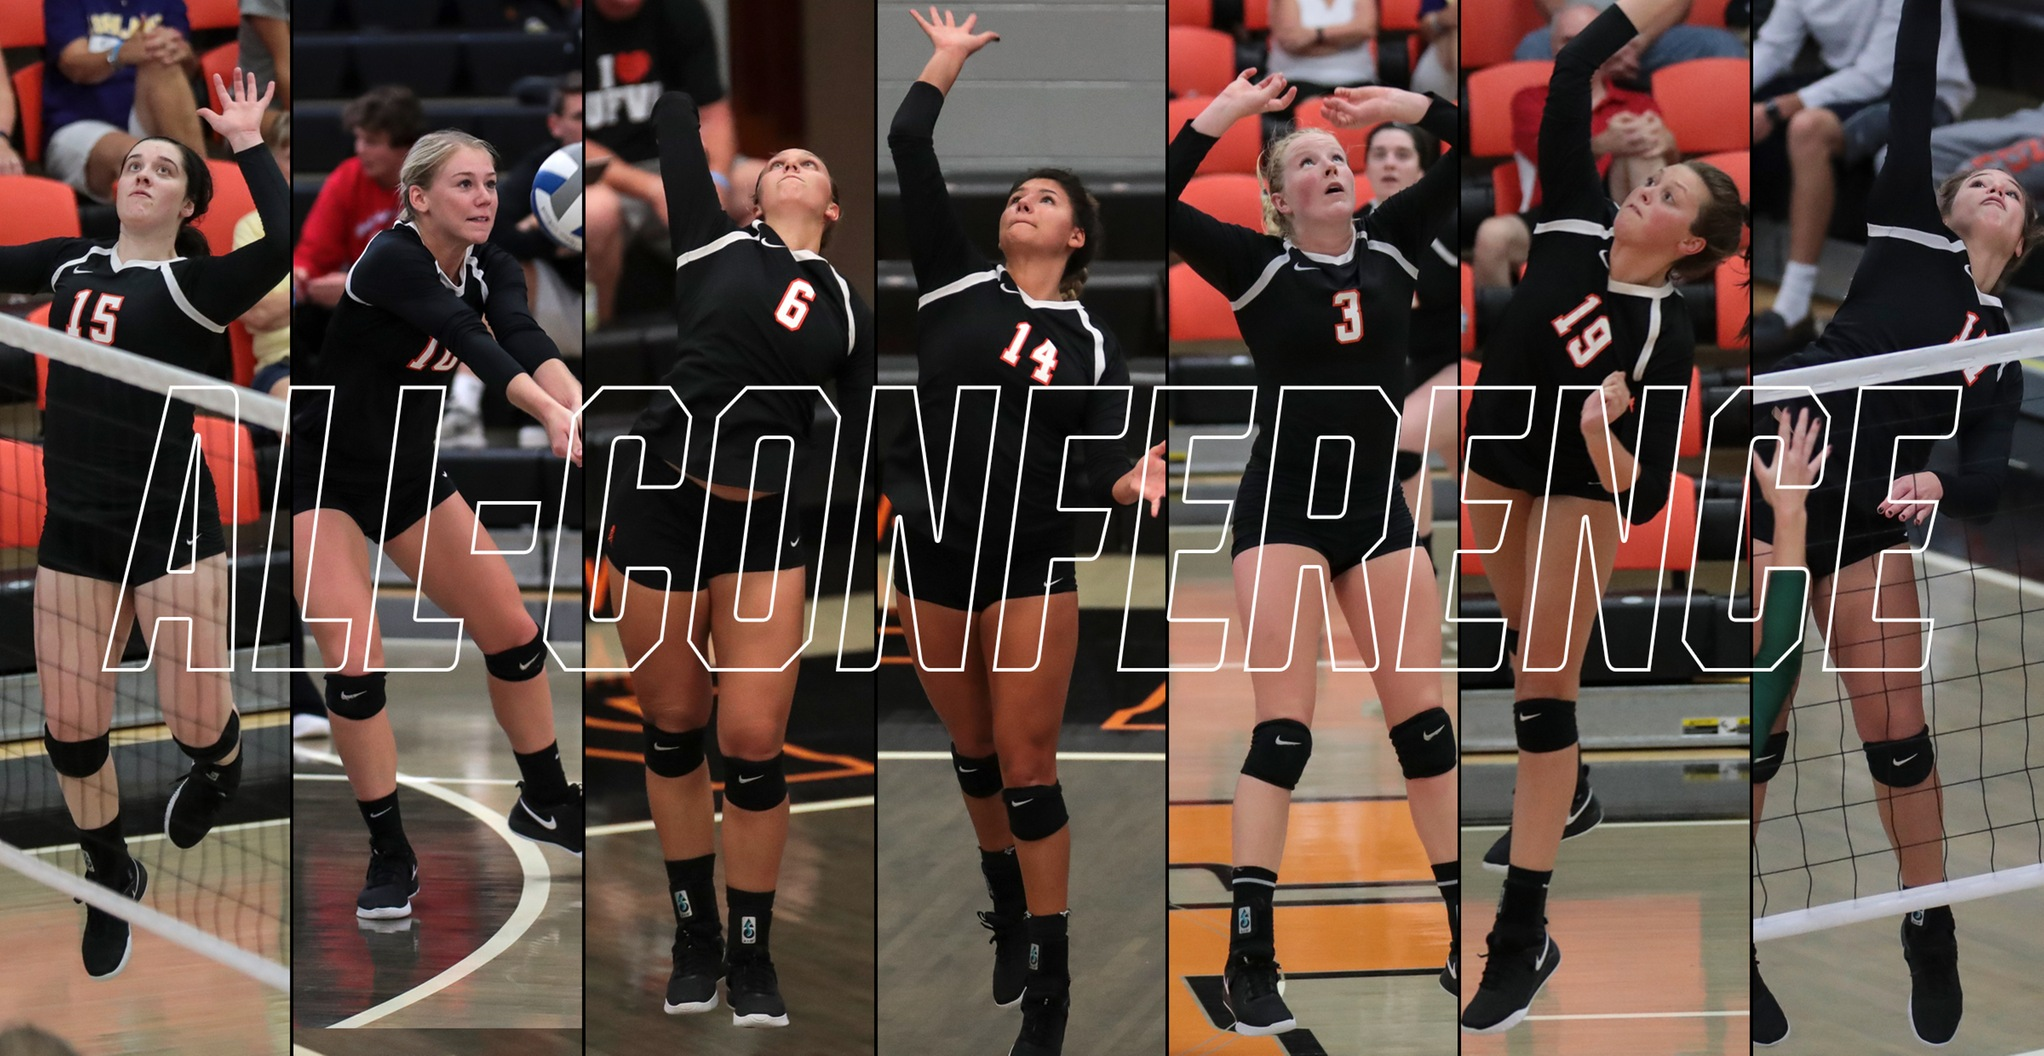 7 Oilers Earn All-Conference Accolades